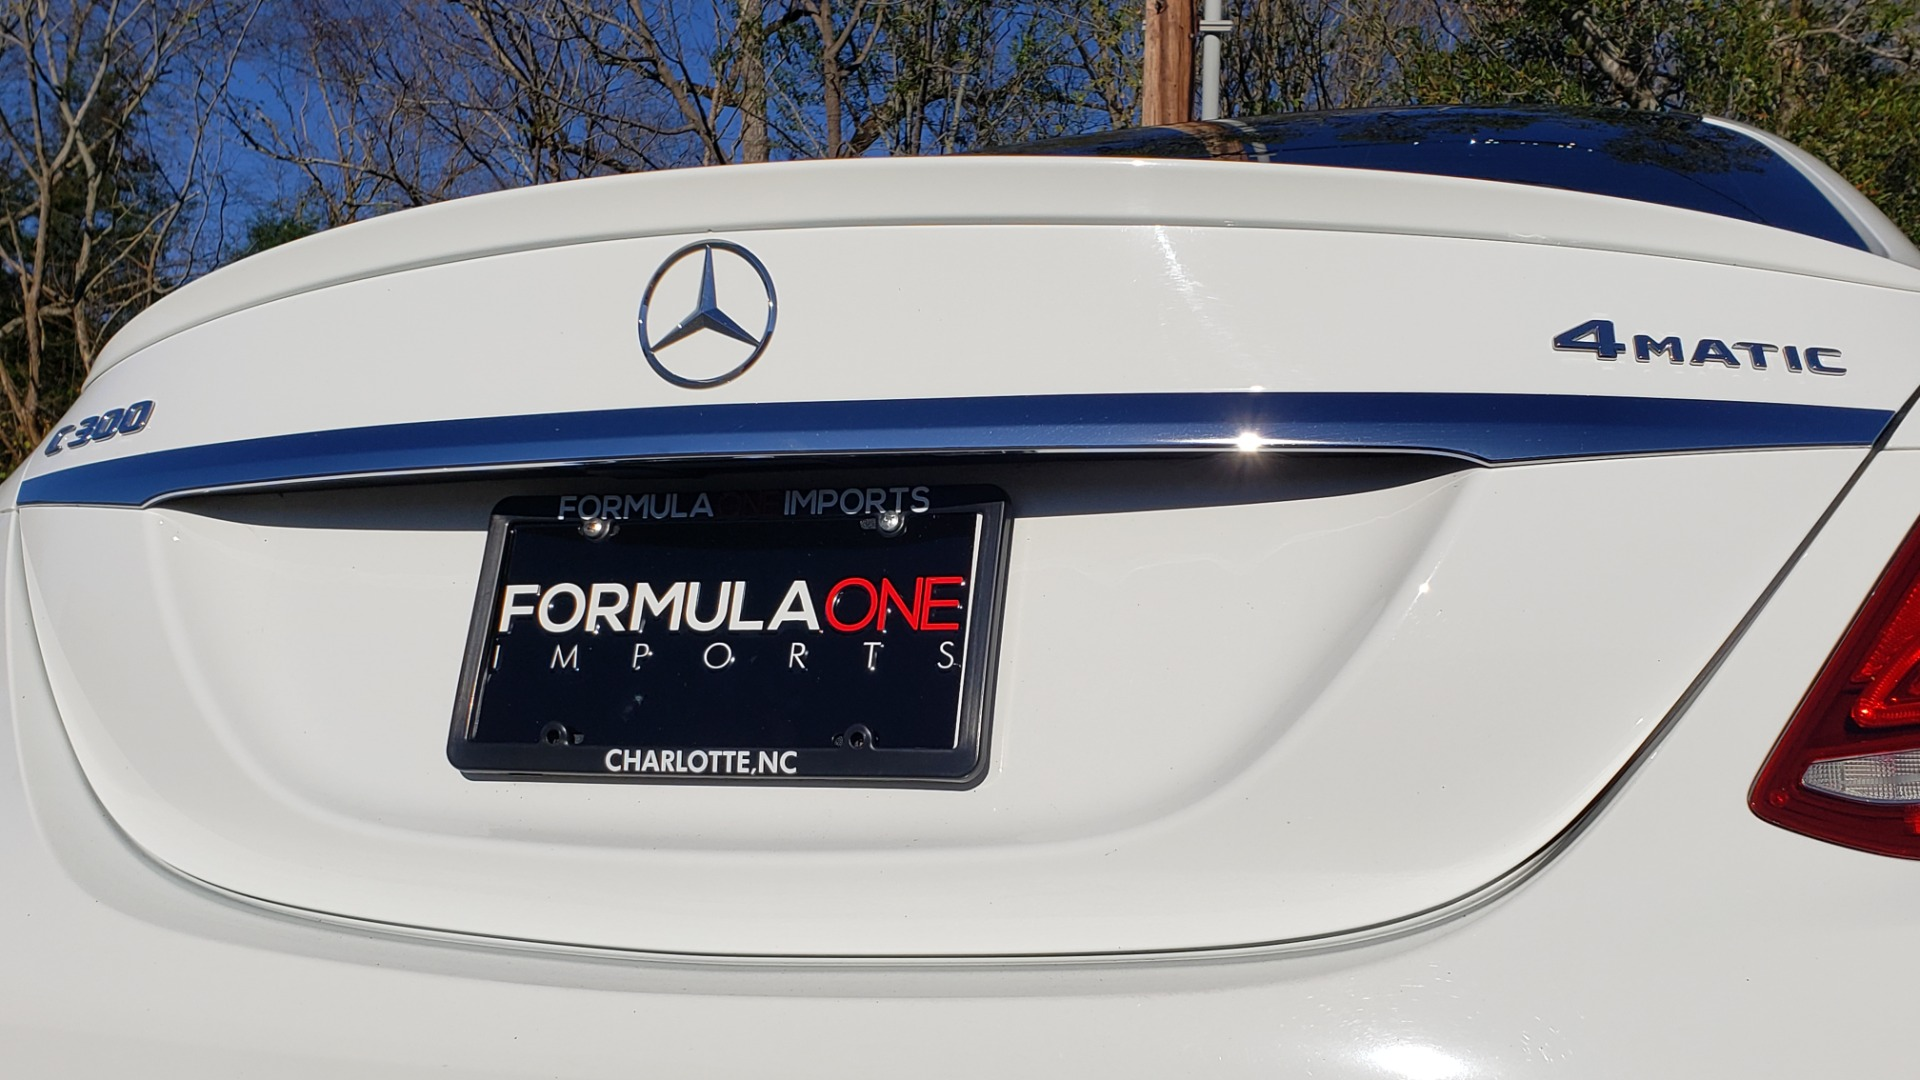 Used 2017 Mercedes-Benz C-CLASS C 300 SPORT / PREM PKG / PANO-ROOF / NAV / HTD STST / REARVIEW for sale Sold at Formula Imports in Charlotte NC 28227 24